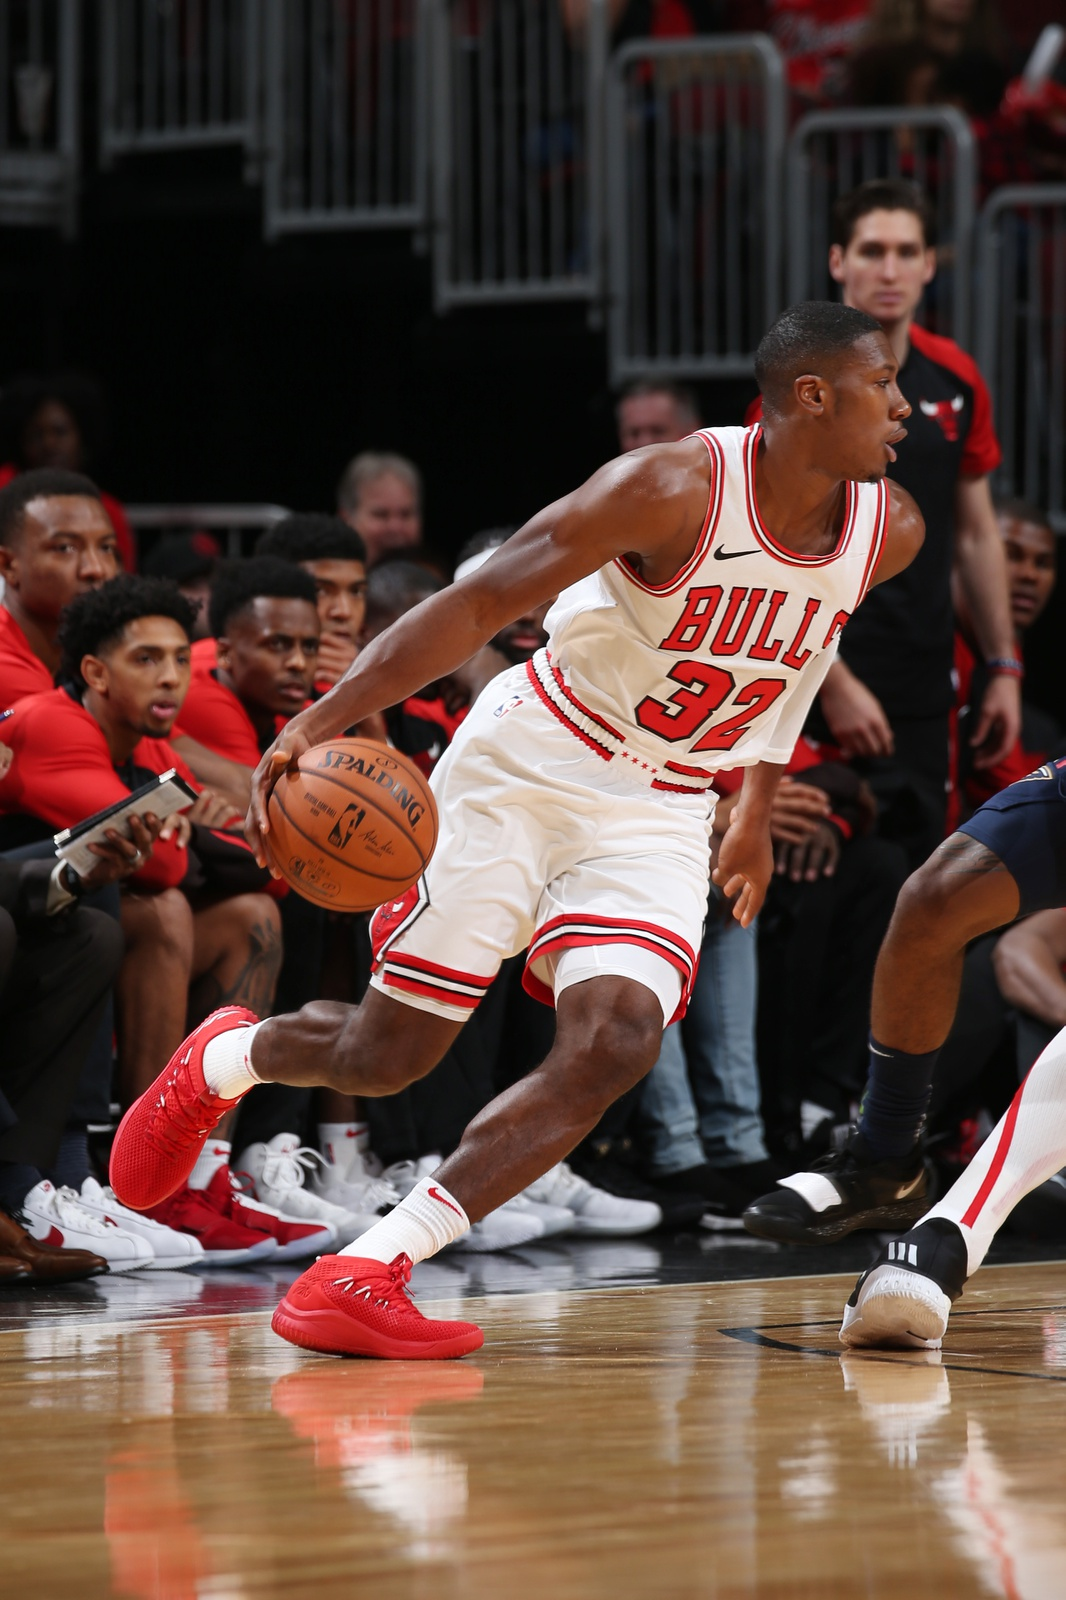 Kris Dunn #32 of the Chicago Bulls handles the ball against the New Orleans Pelicans during a pre-season game on September 30, 2018 at the United Center in Chicago, Illinois.